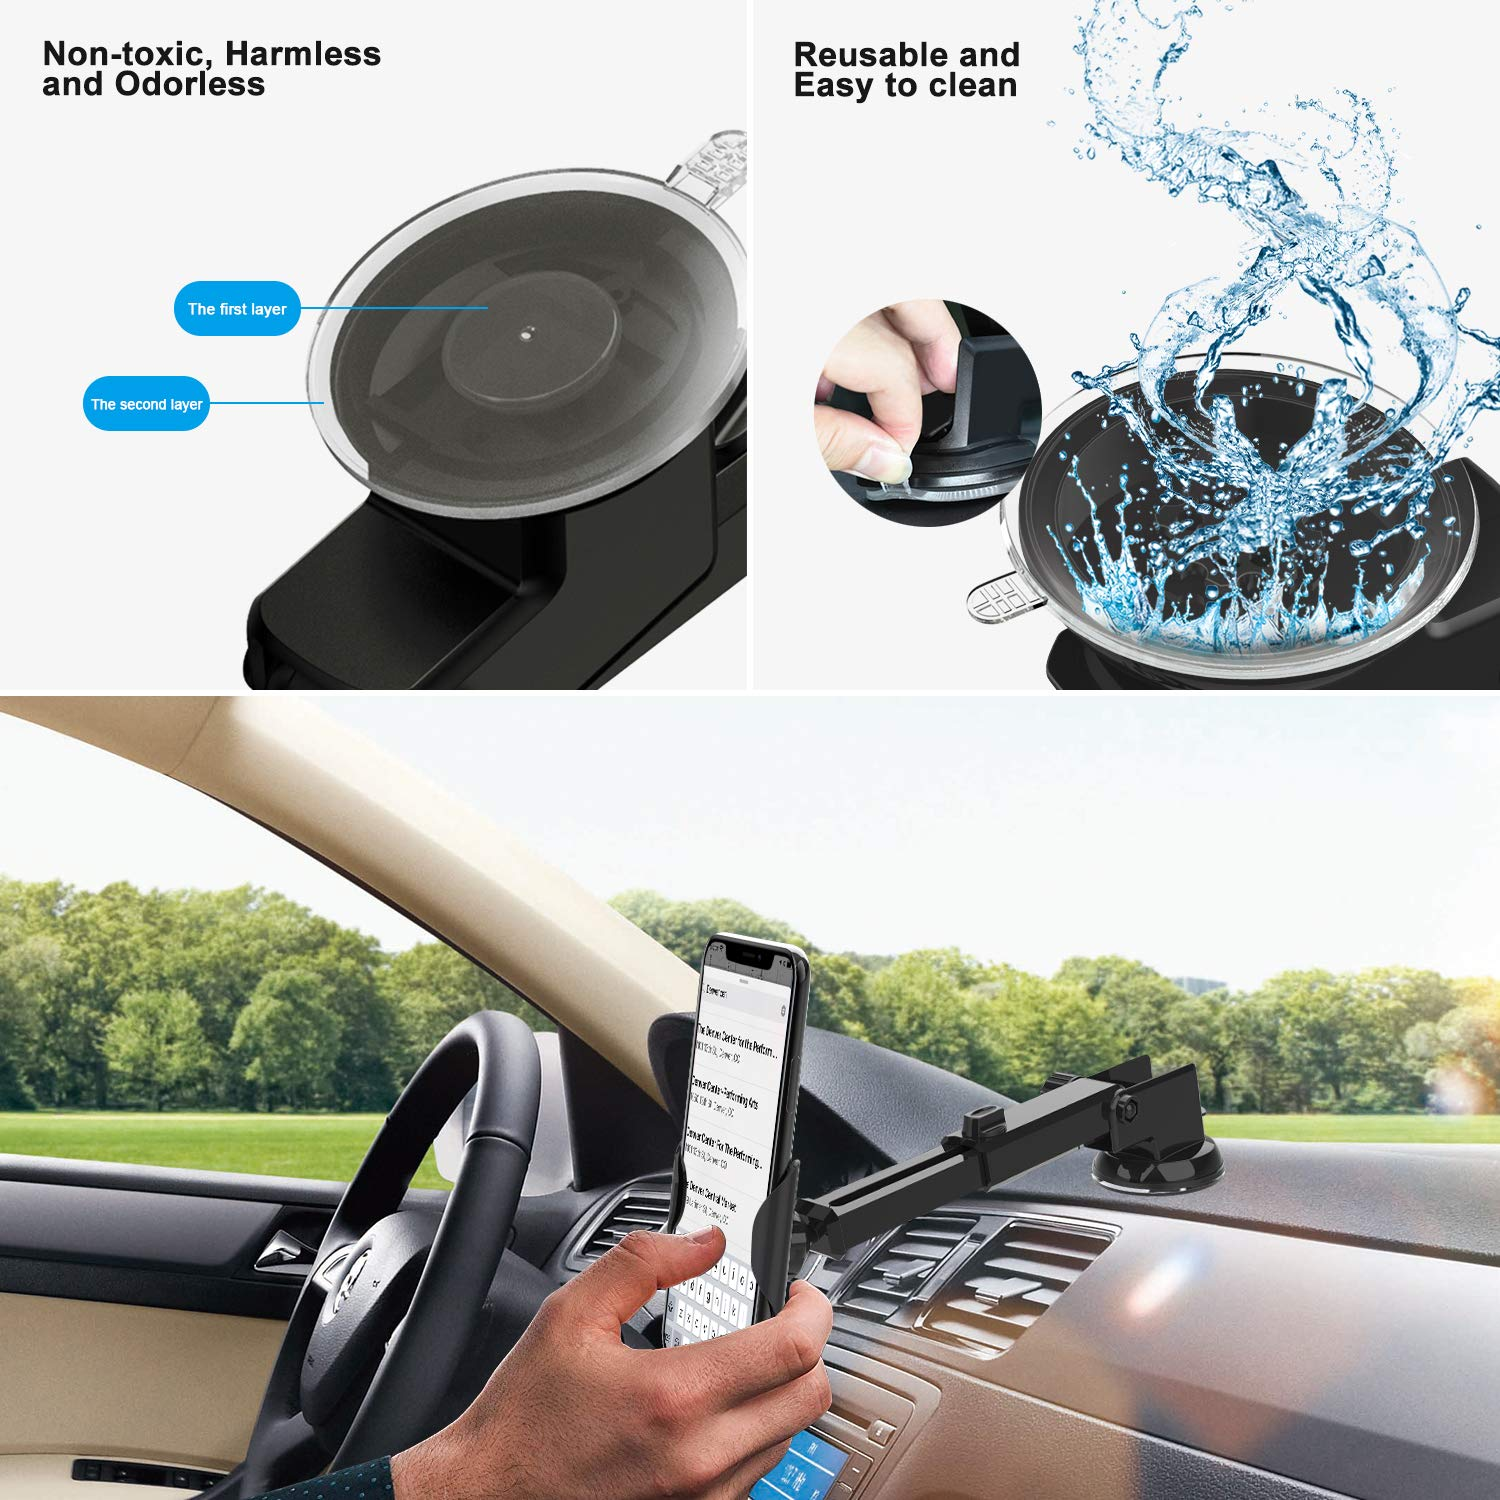 Car Phone Mount 3 in1 Universal iVoler Handsfree Holder Extendable Cradle for Air Vent Dashboard Windshield Strong Suction Cup Gel Compatible iPhone XR XS Max 7 8 Plus X 6s Samsung Galaxy Note S9 S8 4351527001